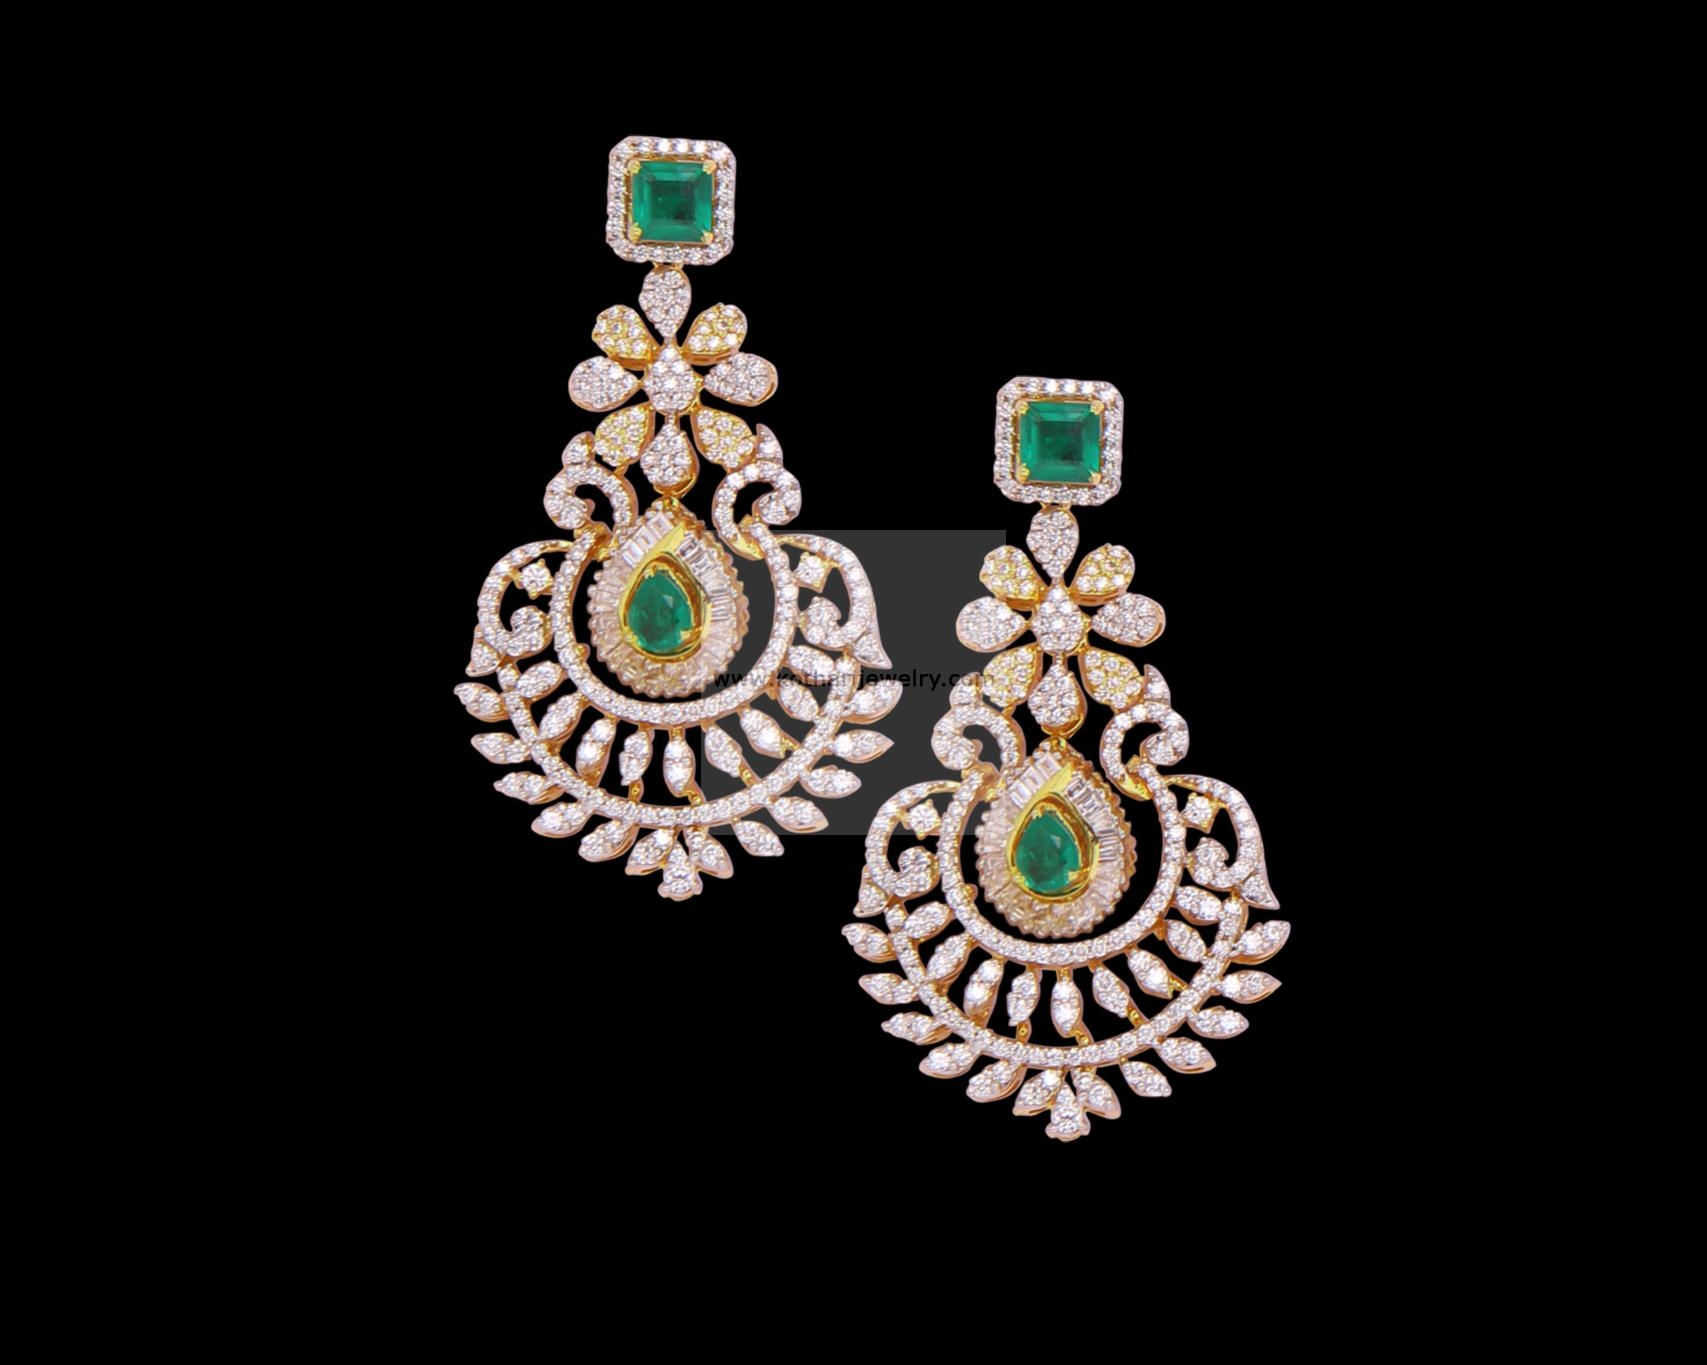 Indian Diamond Bali Earrings Djpam0067 Bridal Chandbali Erdia00001